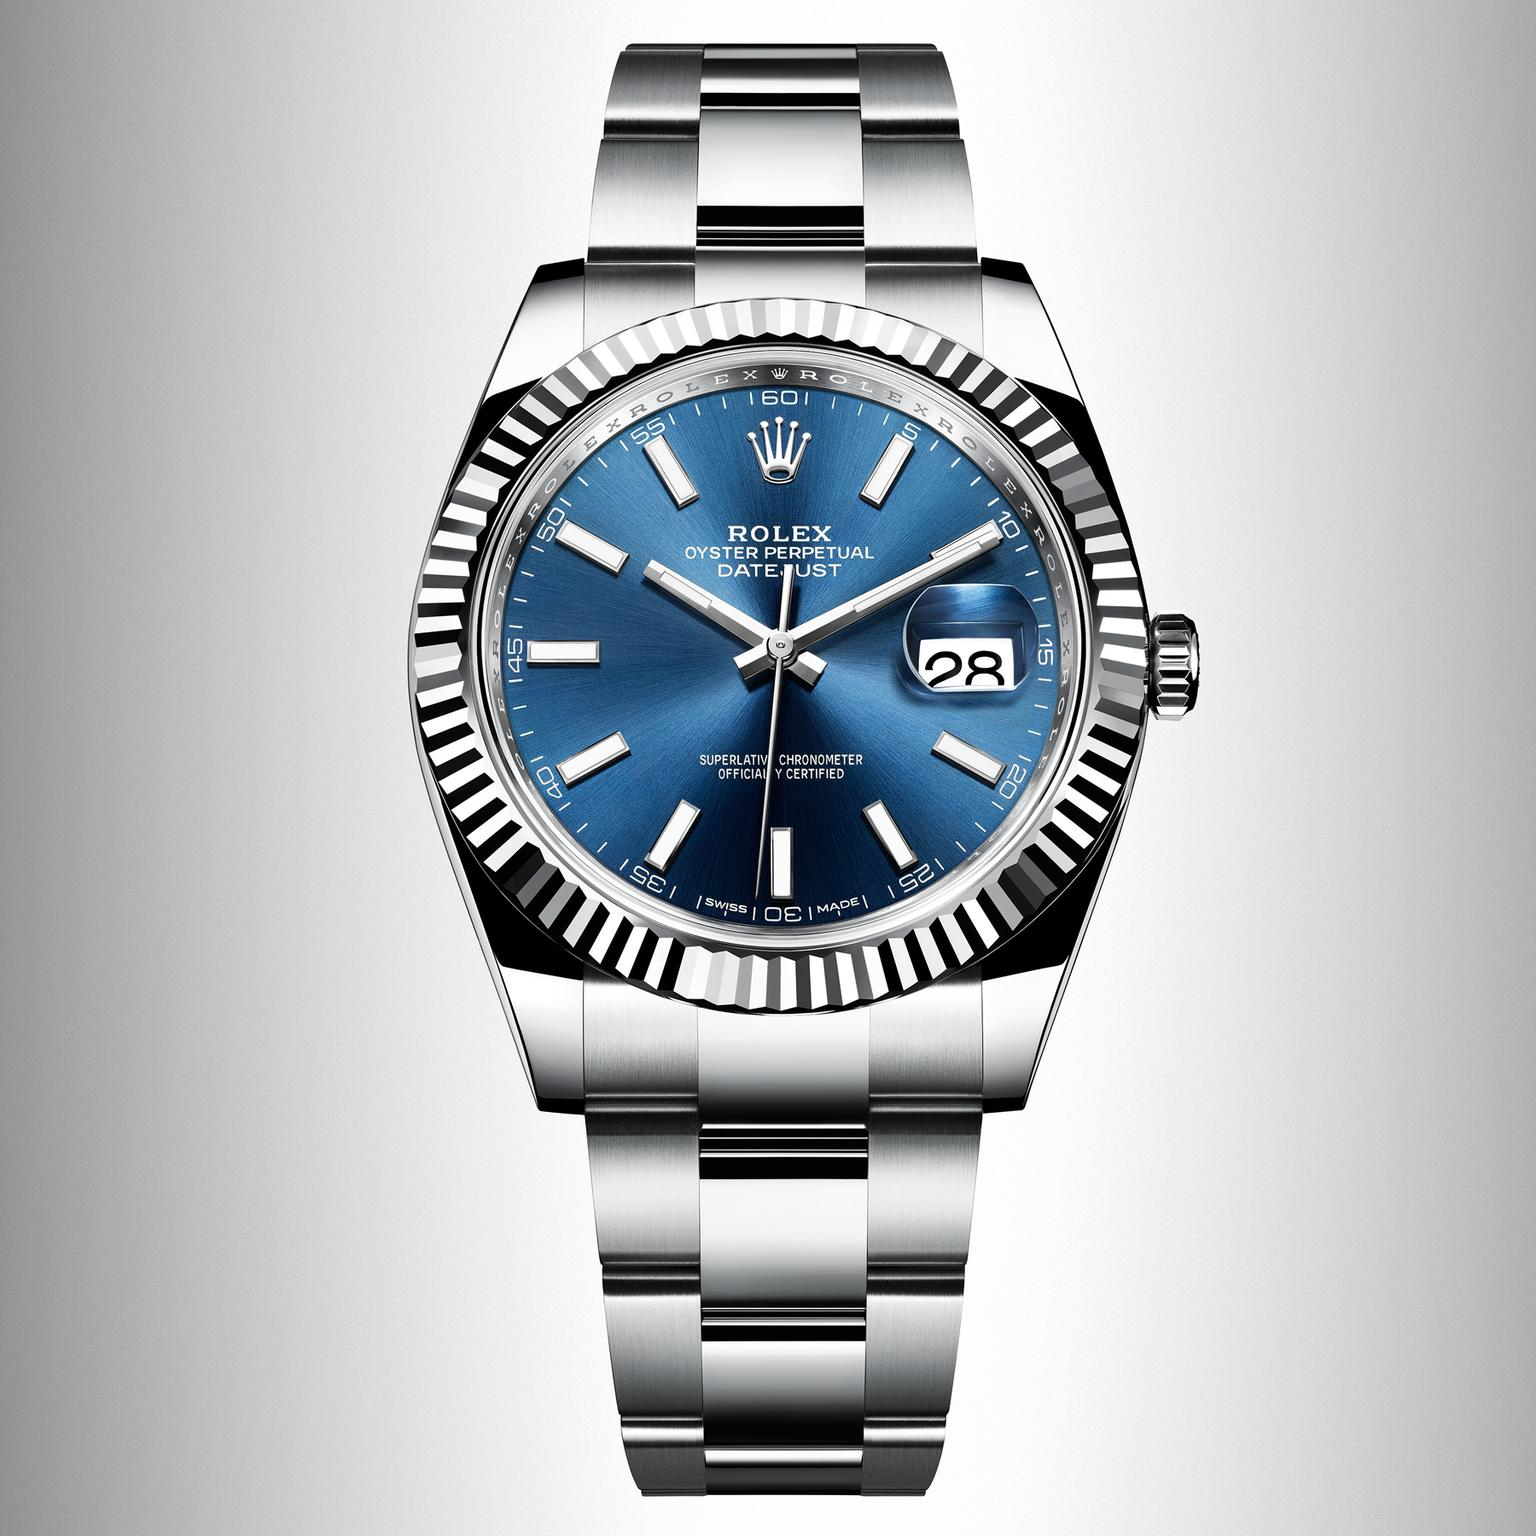 Rolex Datejust 41 watch 2017